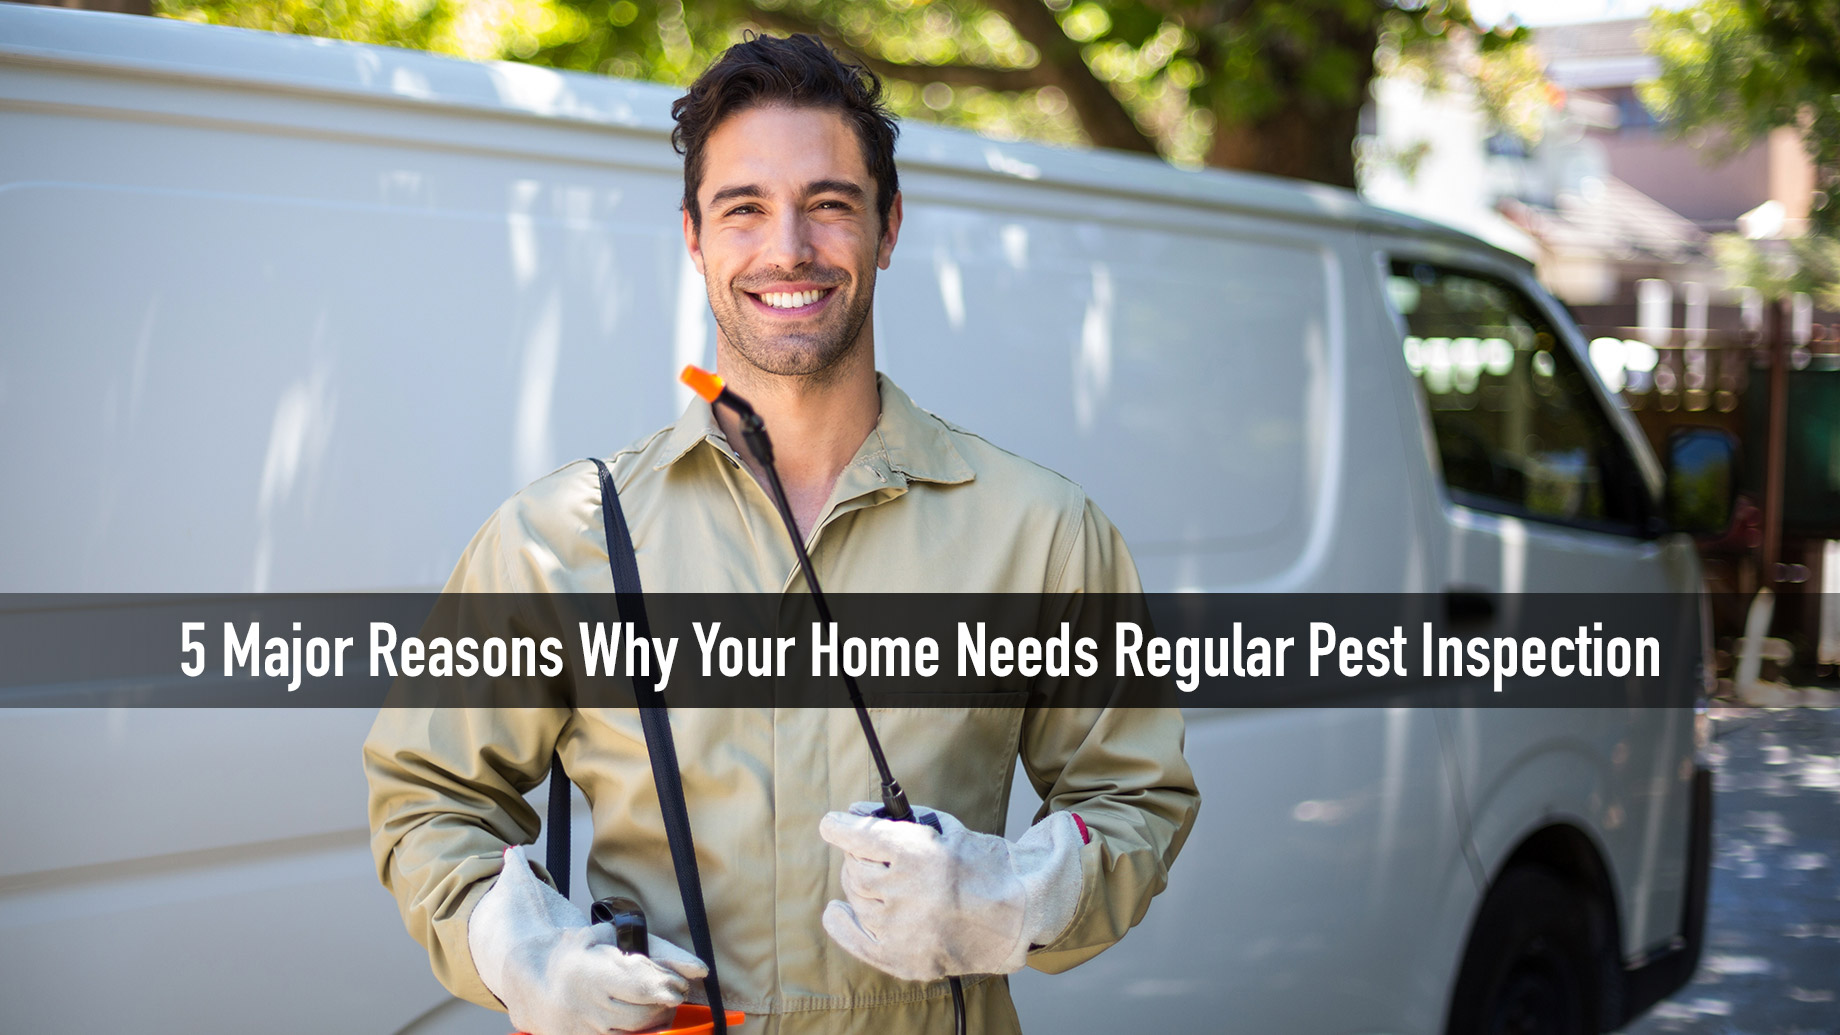 5 Major Reasons Why Your Home Needs Regular Pest Inspection